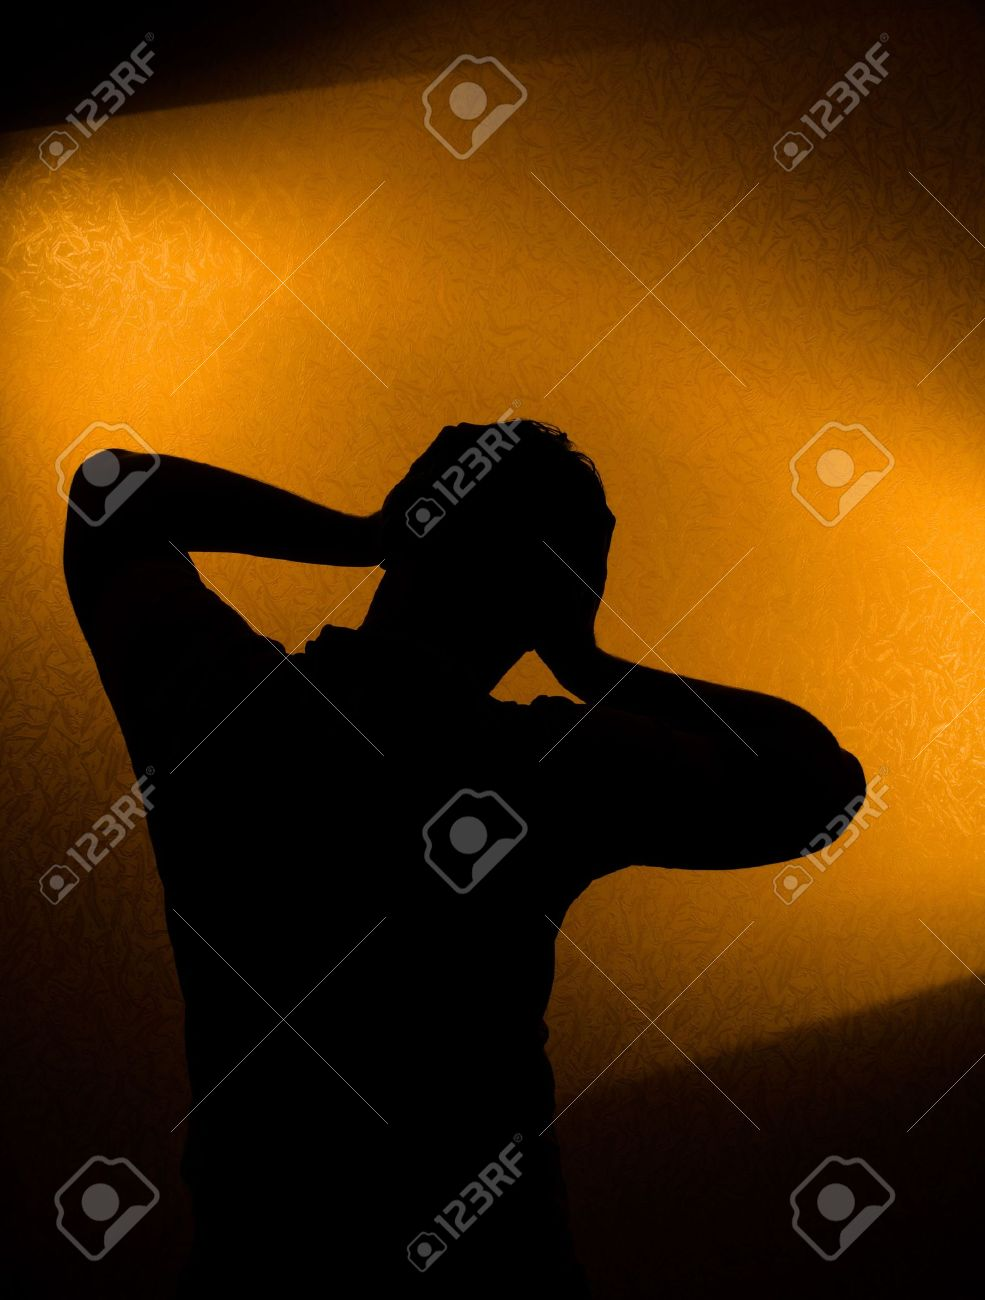 Depression and pain - silhouette of man in the darkness Stock Photo - 6546693